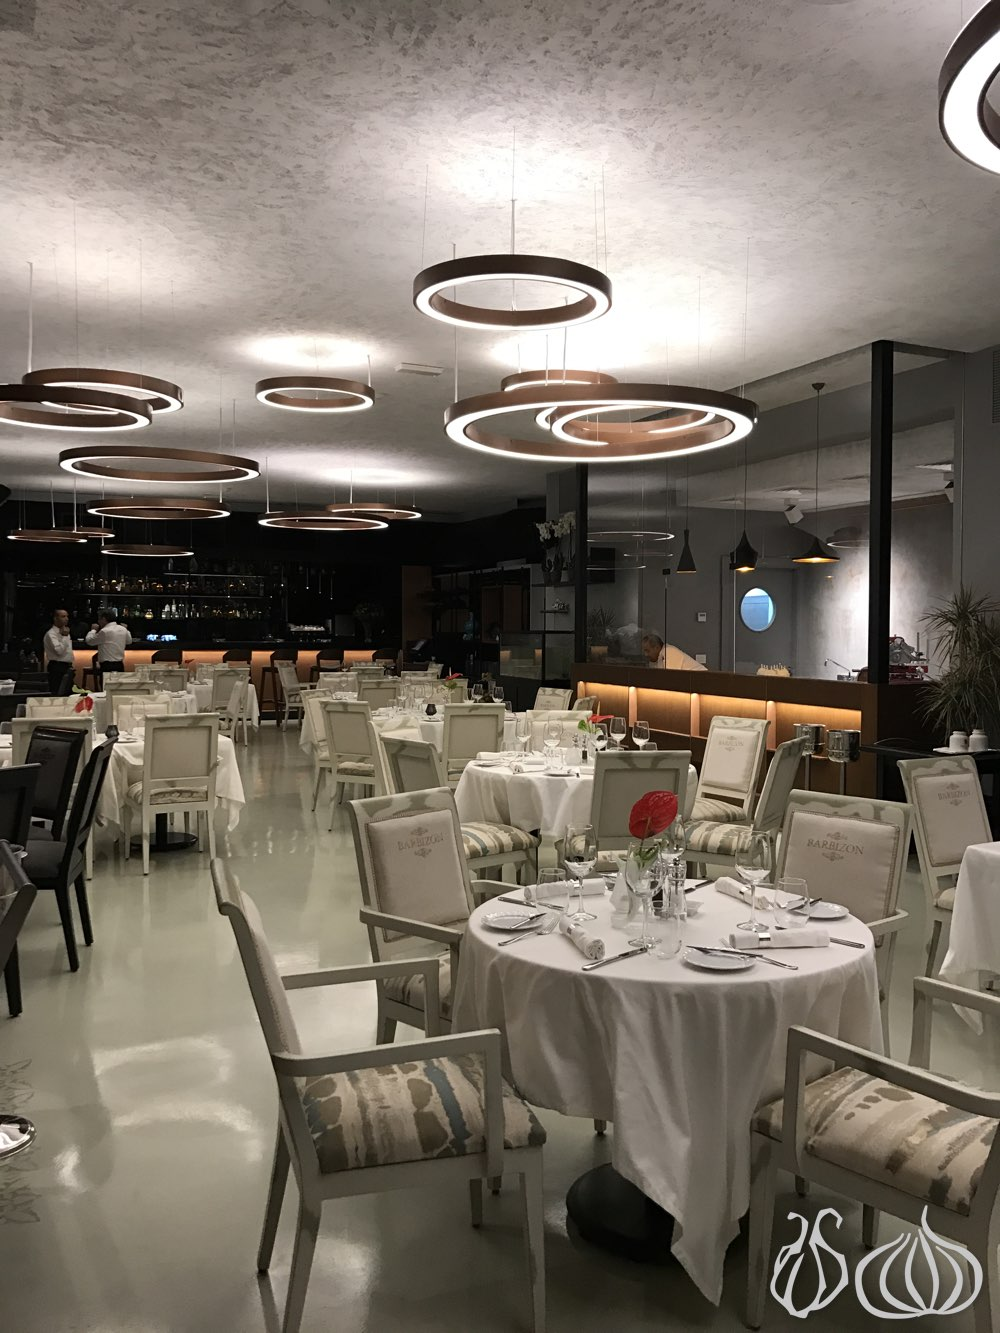 barbizon-french-restaurant-achrafieh-beirut82016-11-27-06-57-03